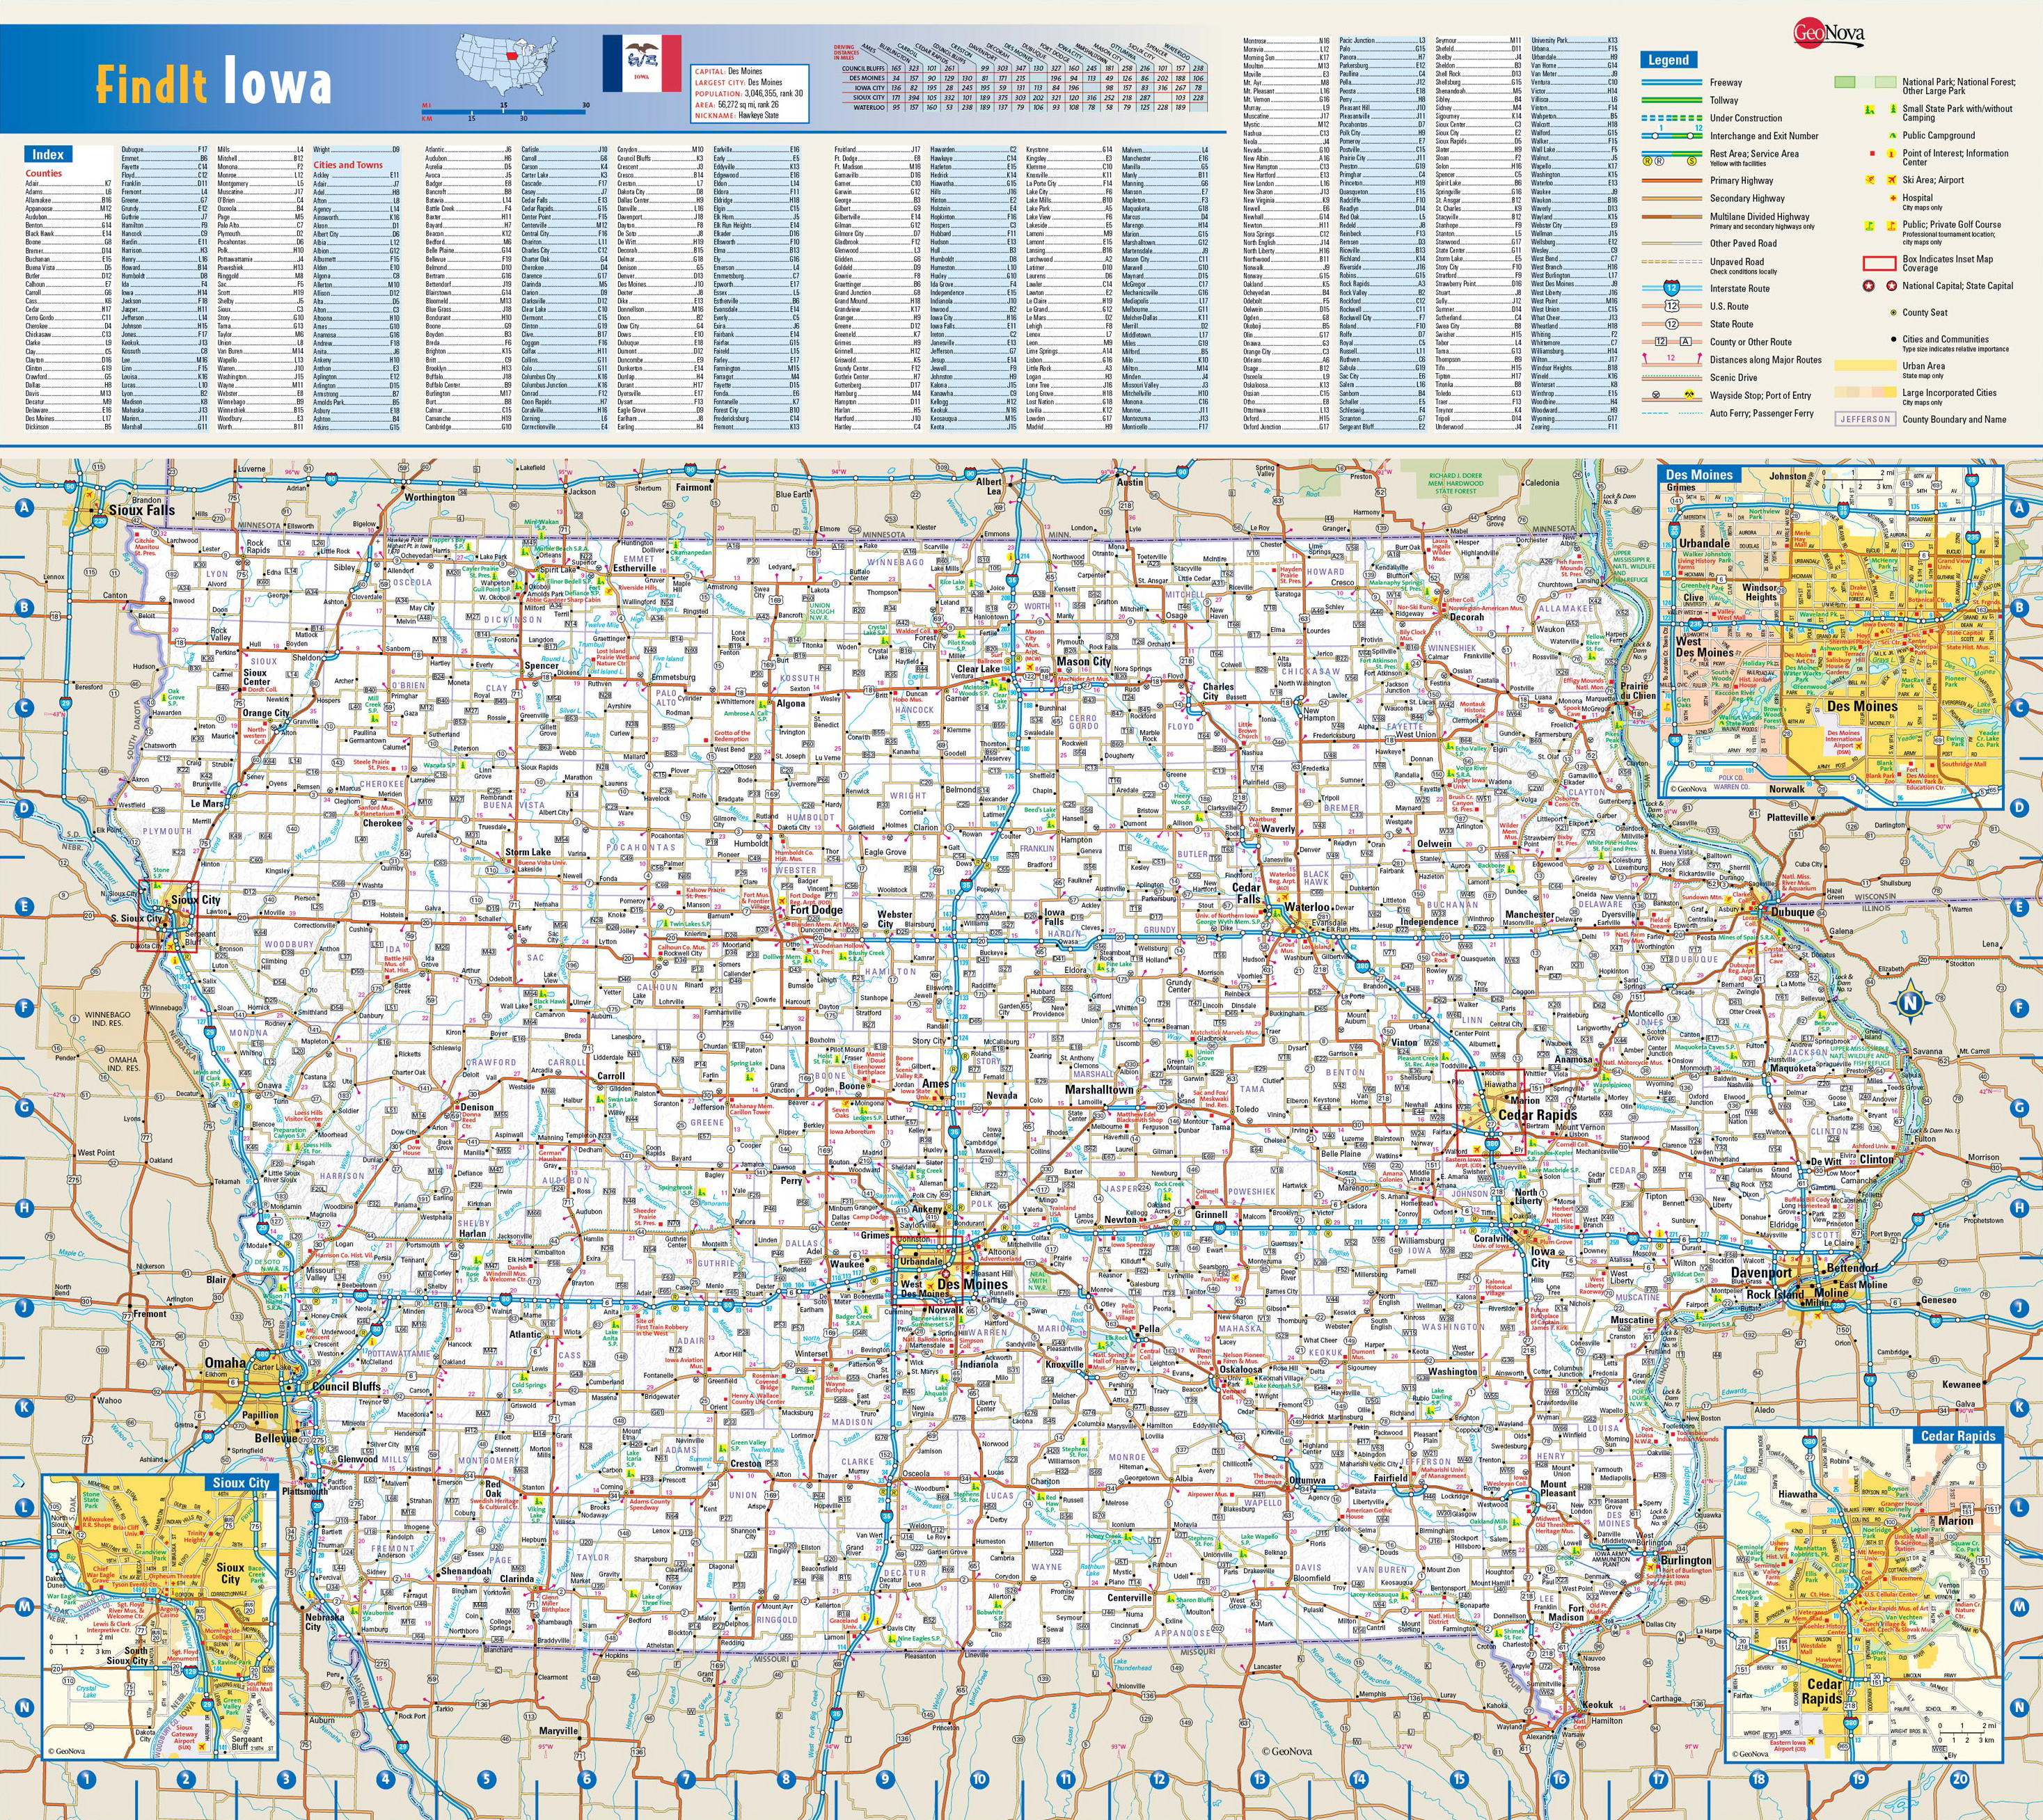 Large Detailed Roads And Highways Map Of Iowa State With National - Map usa iowa